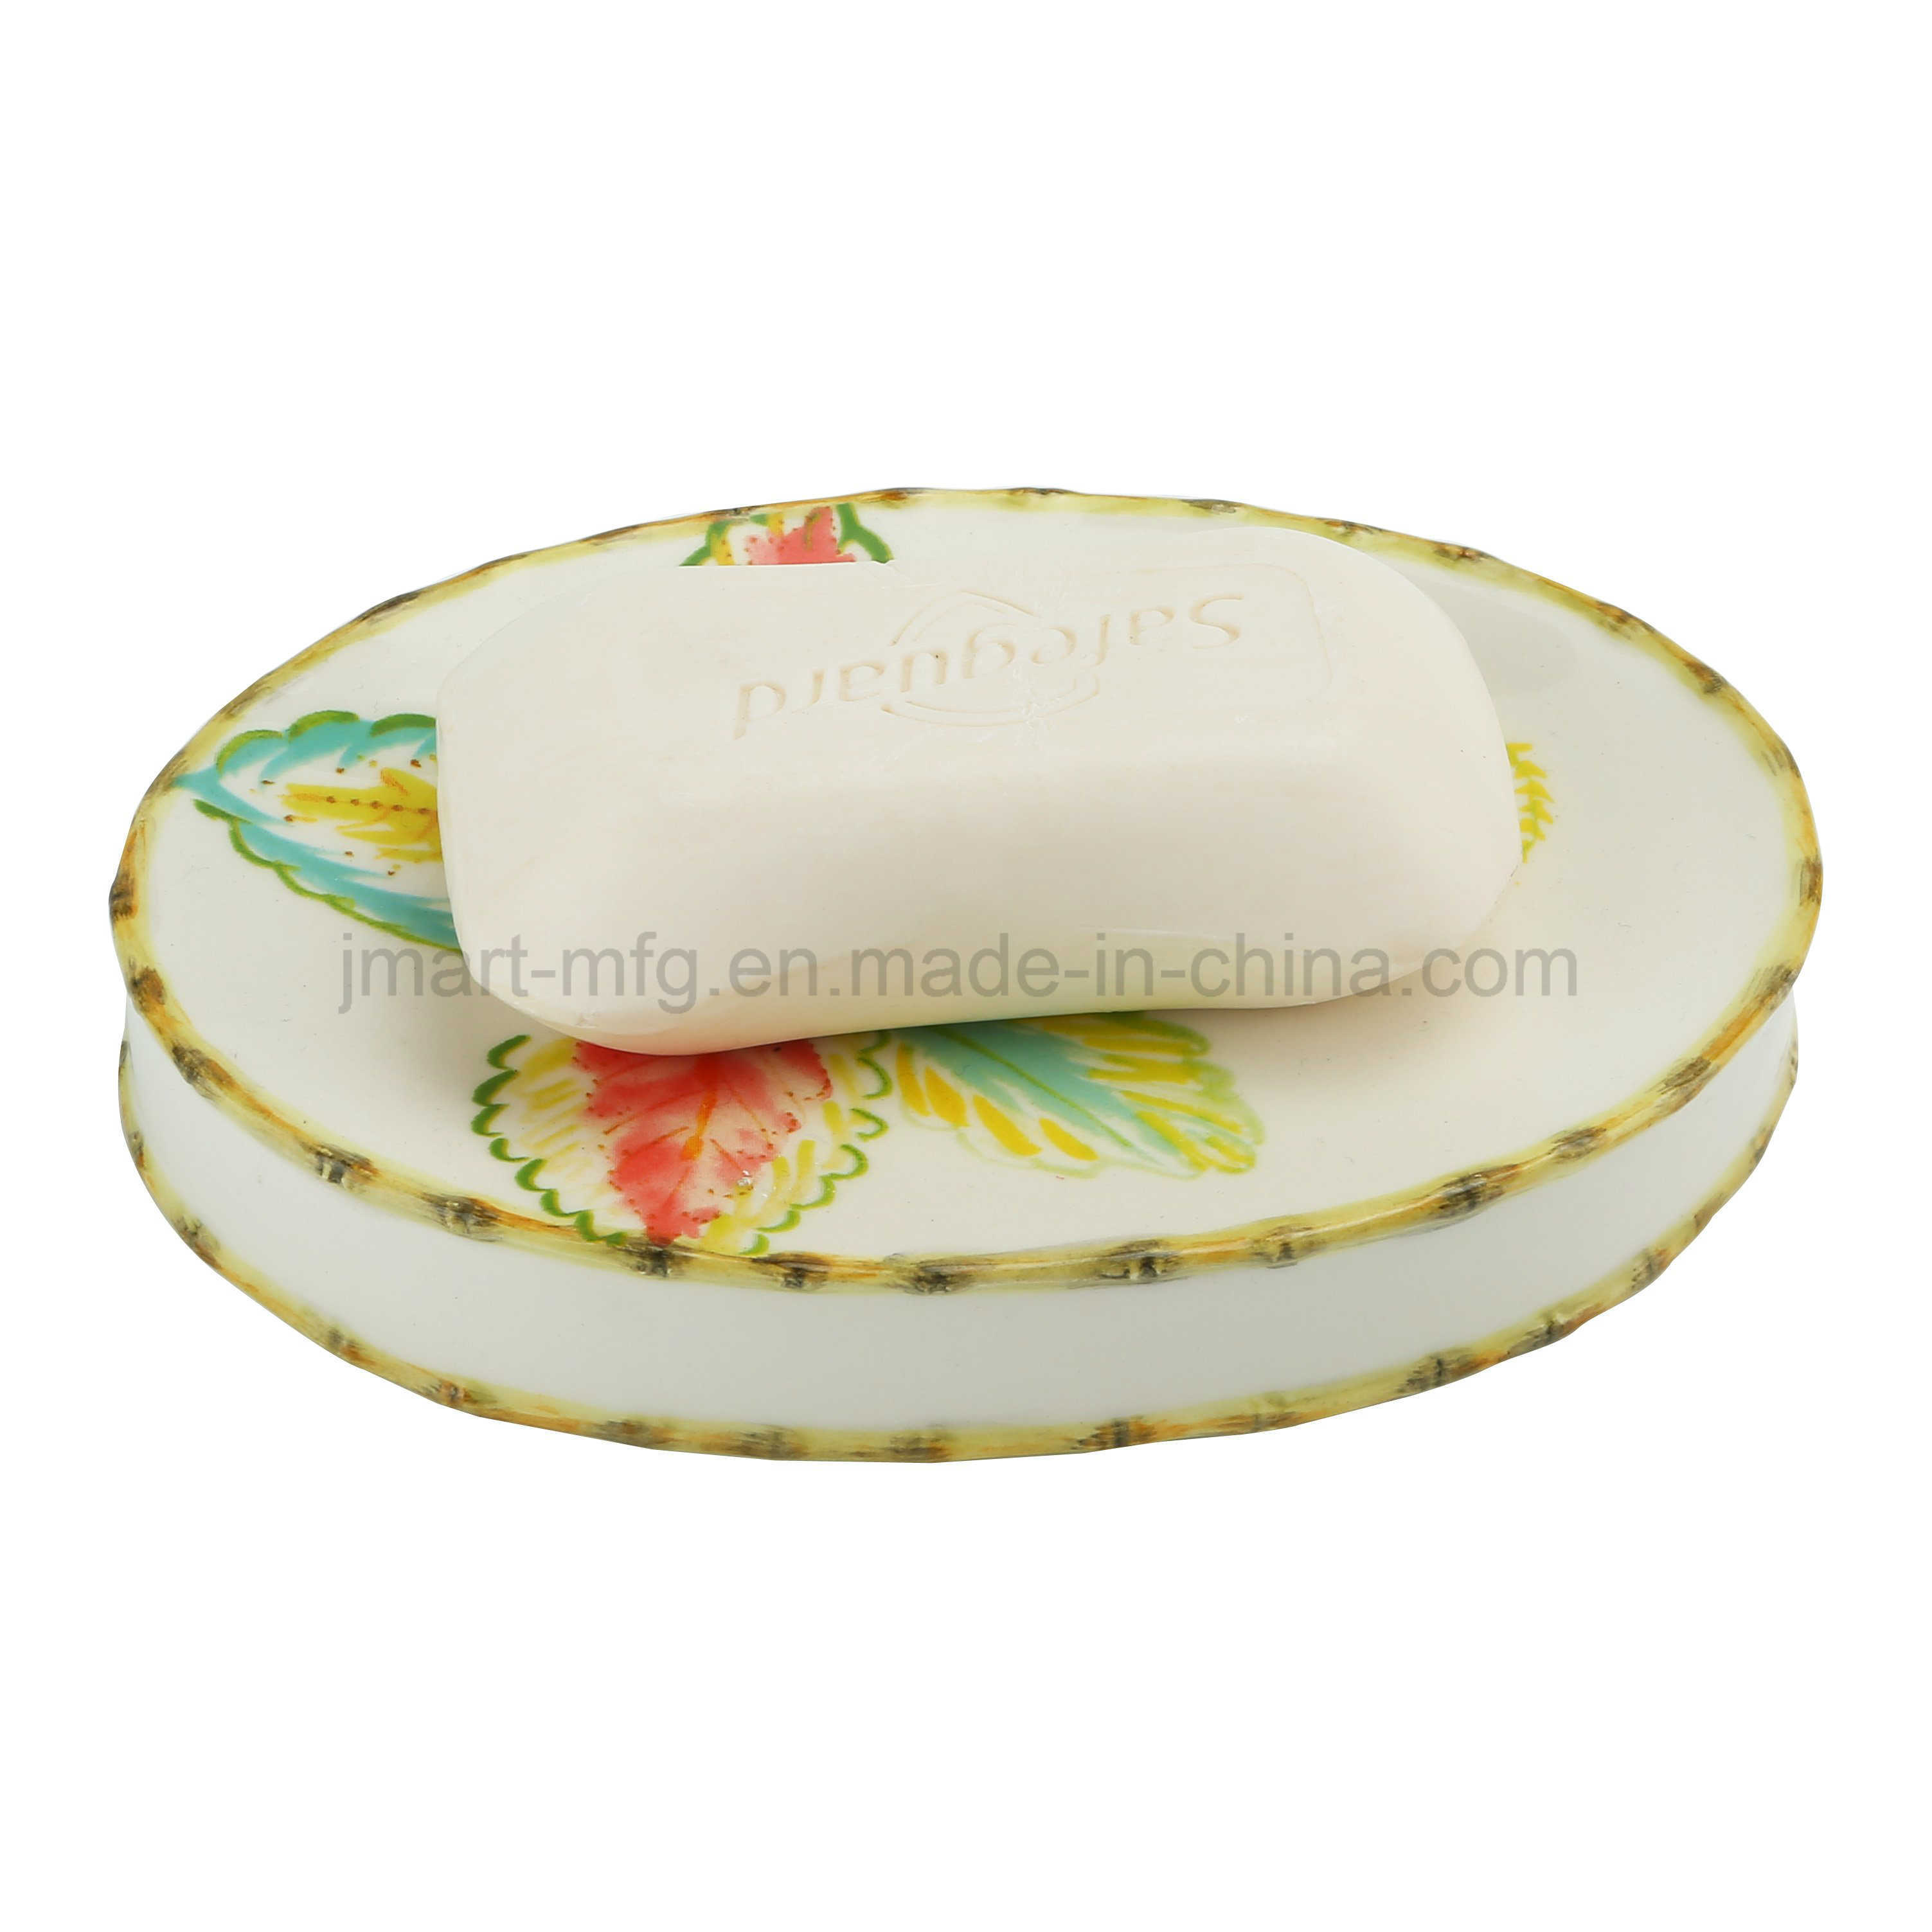 Tropical Palm Decal Ceramic Bath/Bathroom Fittings for Accessories Set pictures & photos